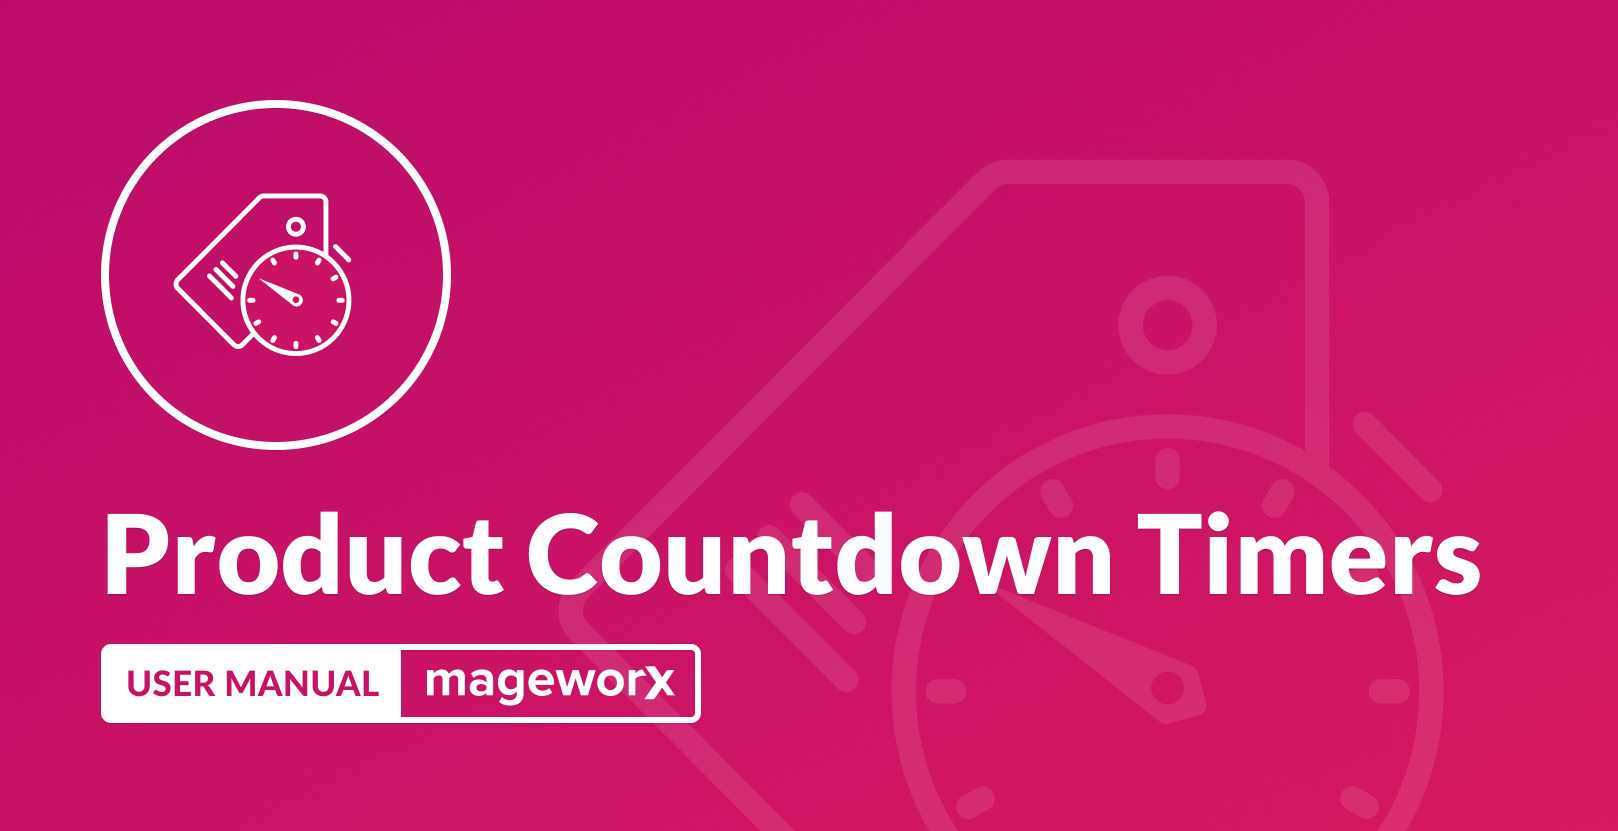 Product Countdown Timers